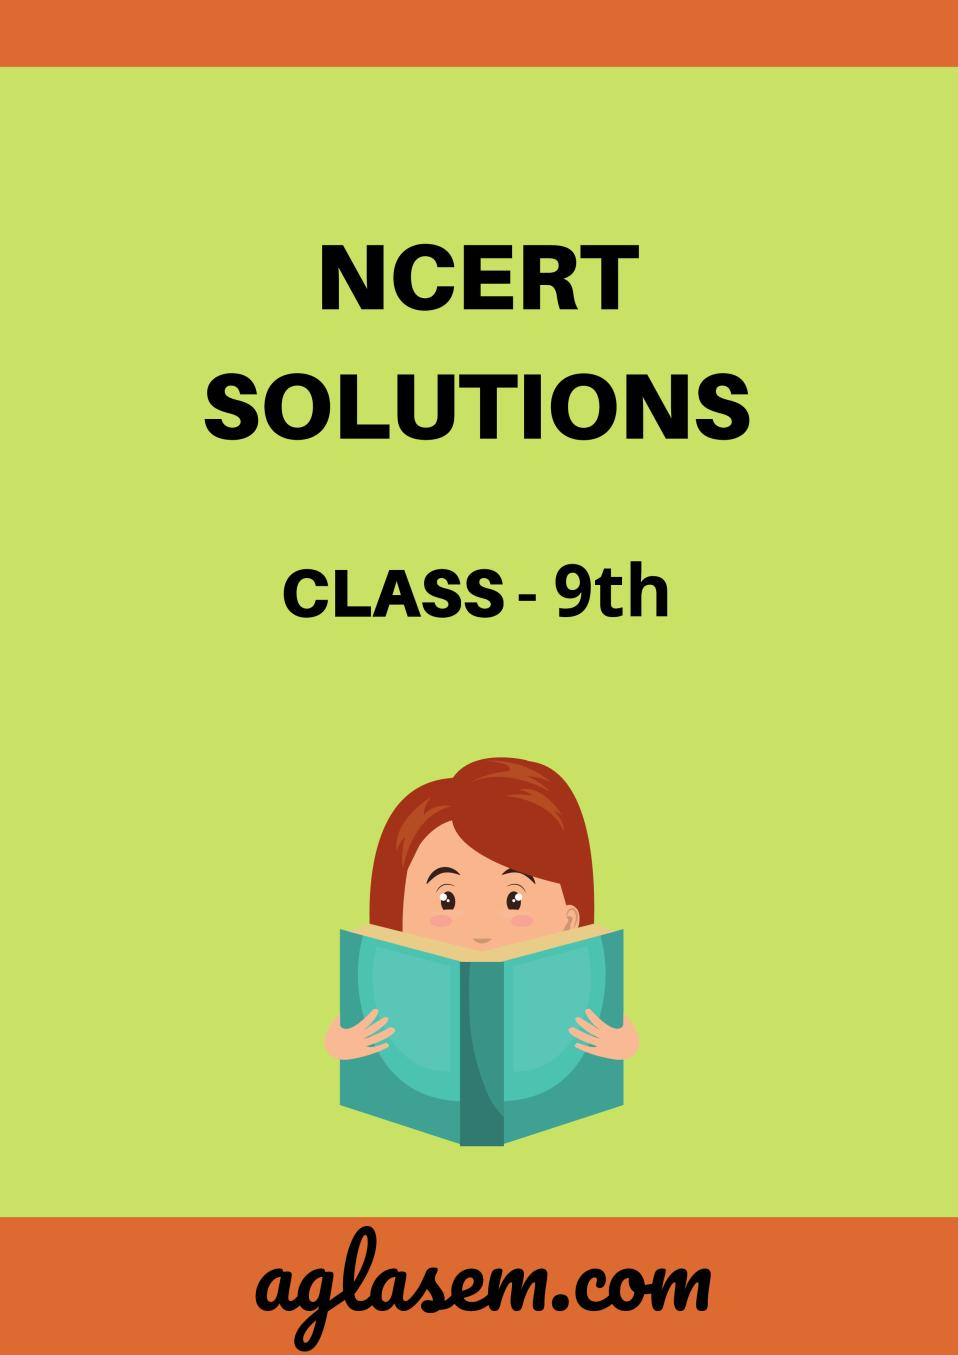 NCERT Solutions for Class 9 Science Chapter 14 Natural Resources